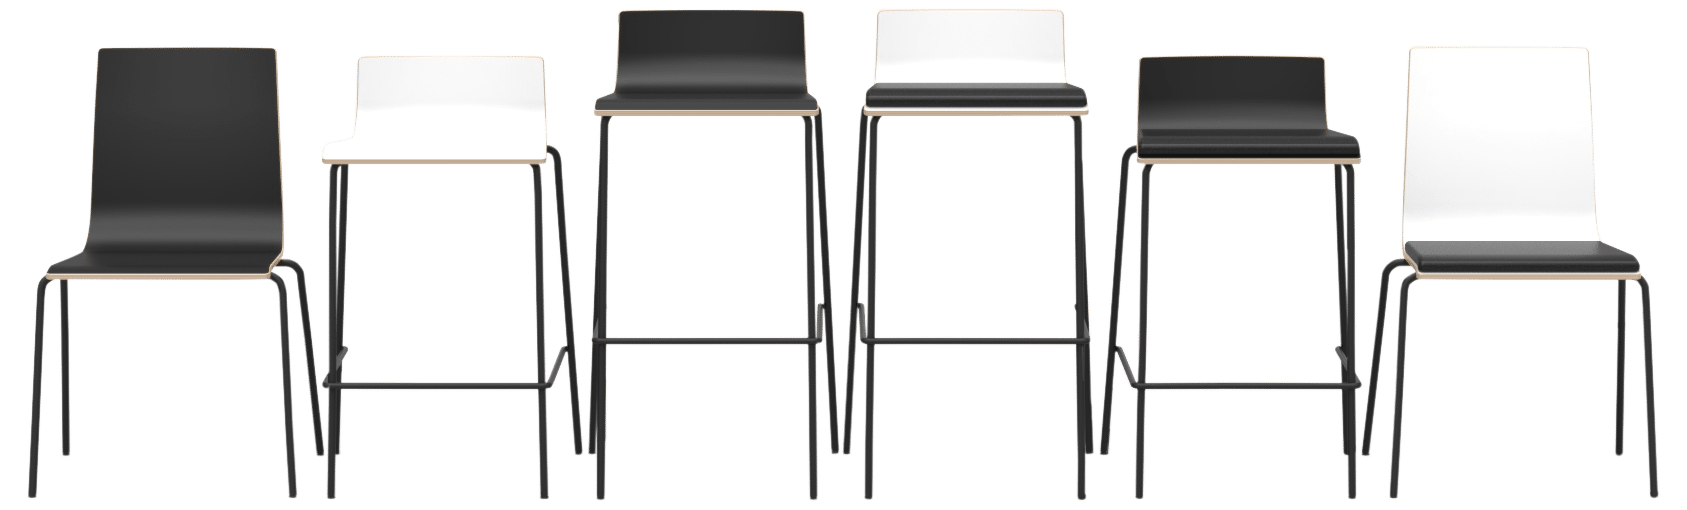 products liberty chair hero